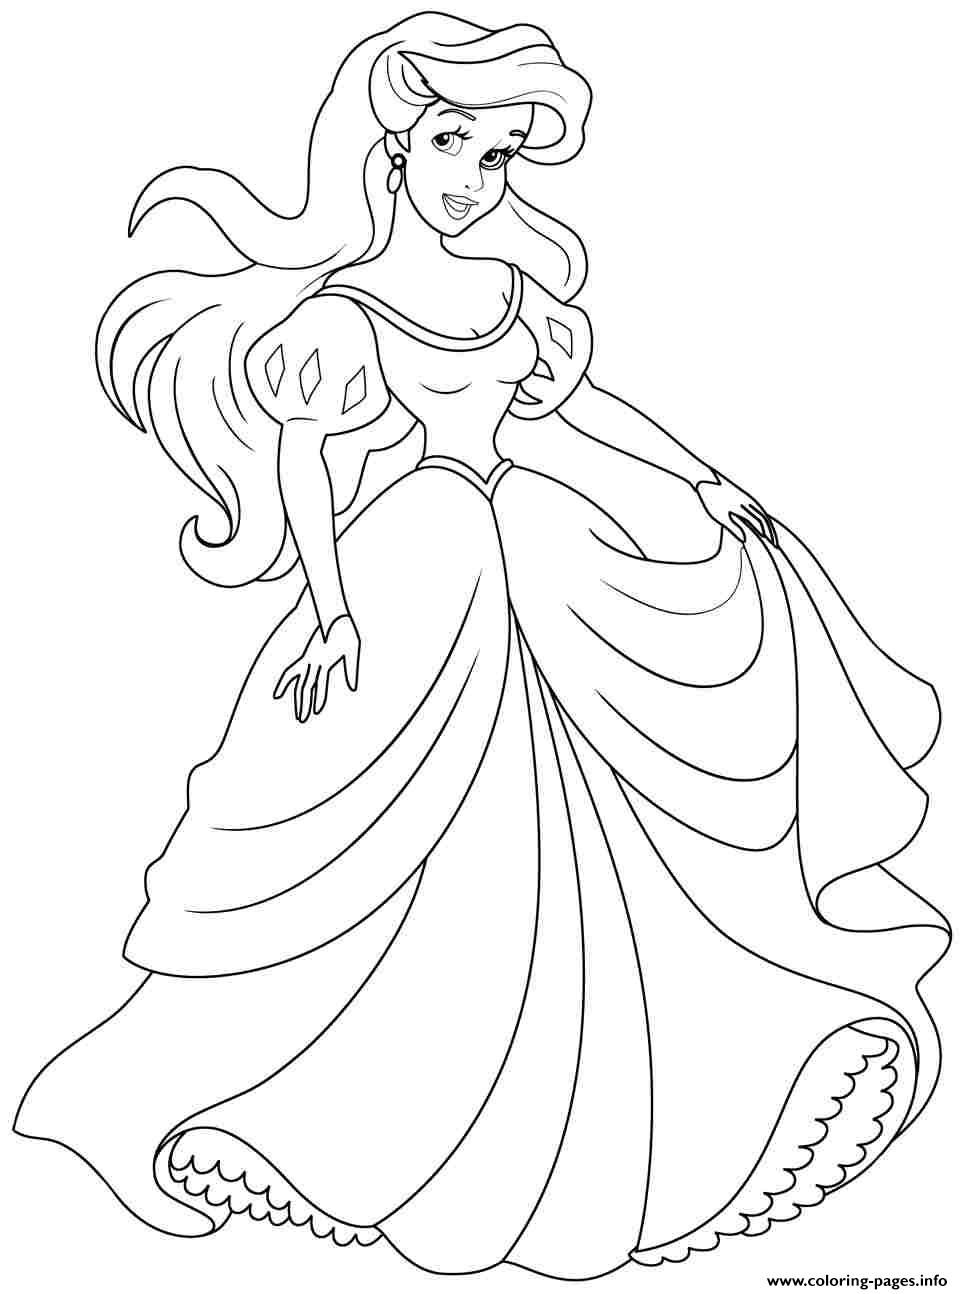 Colouring Pages Disney Princess Ariel